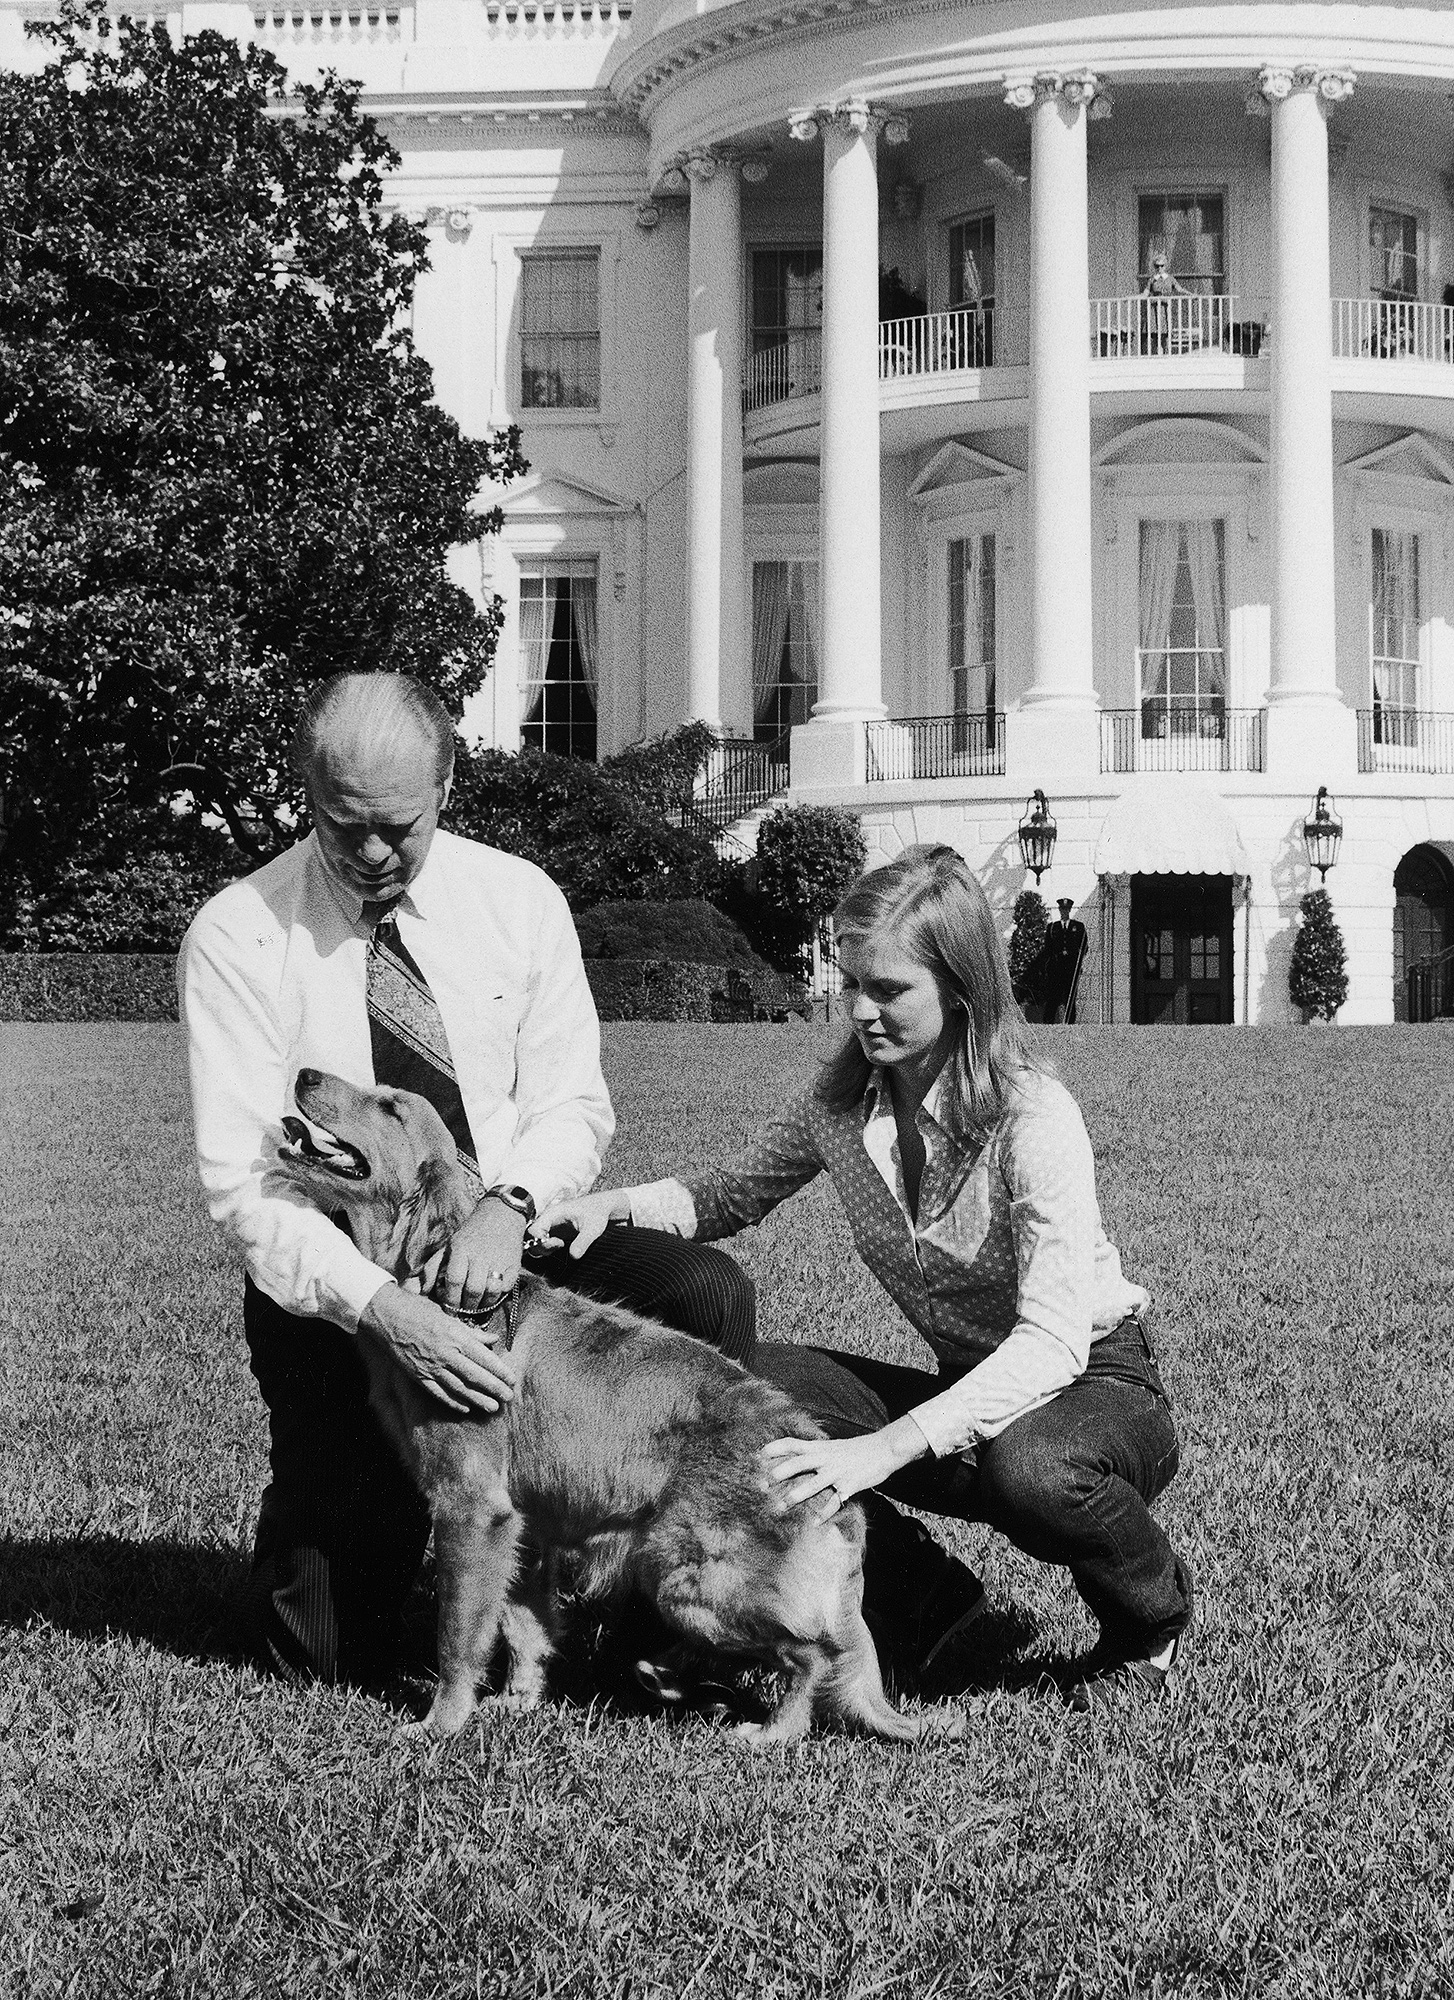 Gerald Ford and his daughter Susan Ford